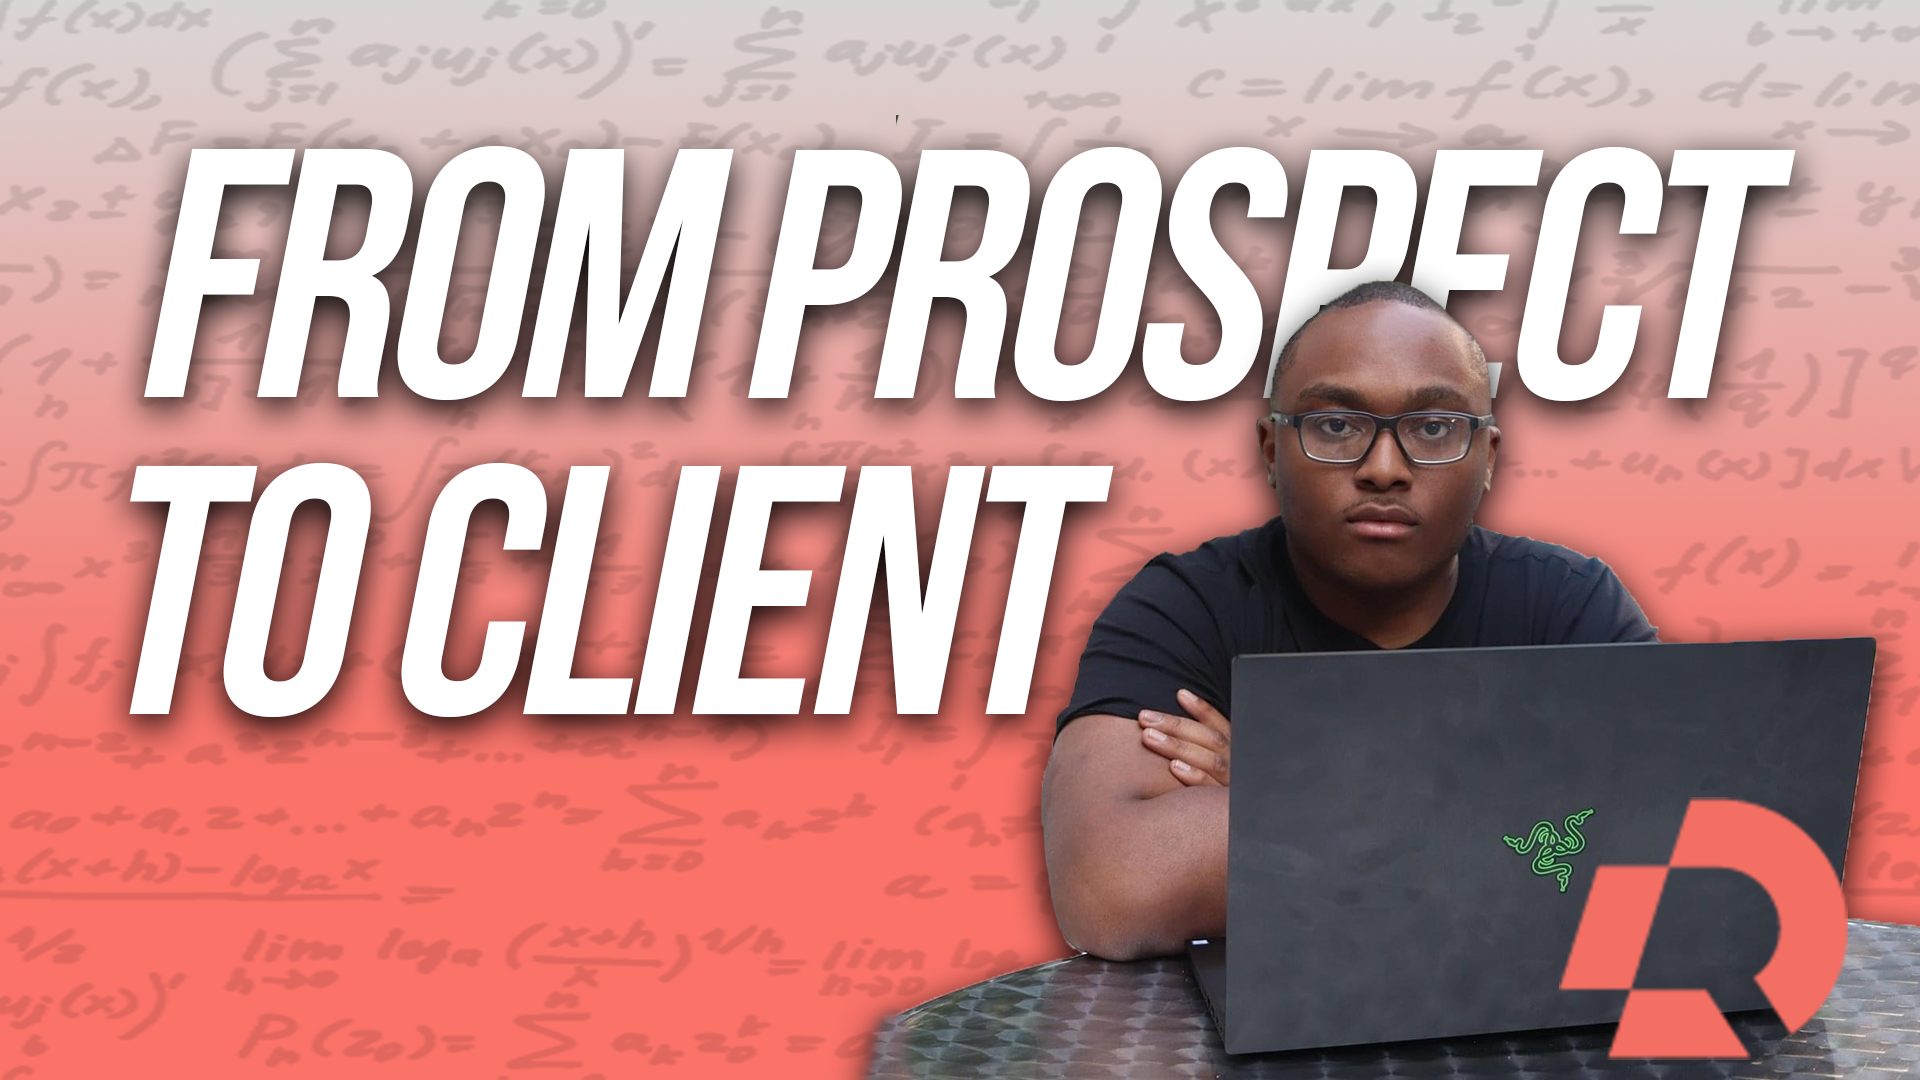 From Prospect to Client: The 6-Step Conversion Blueprint